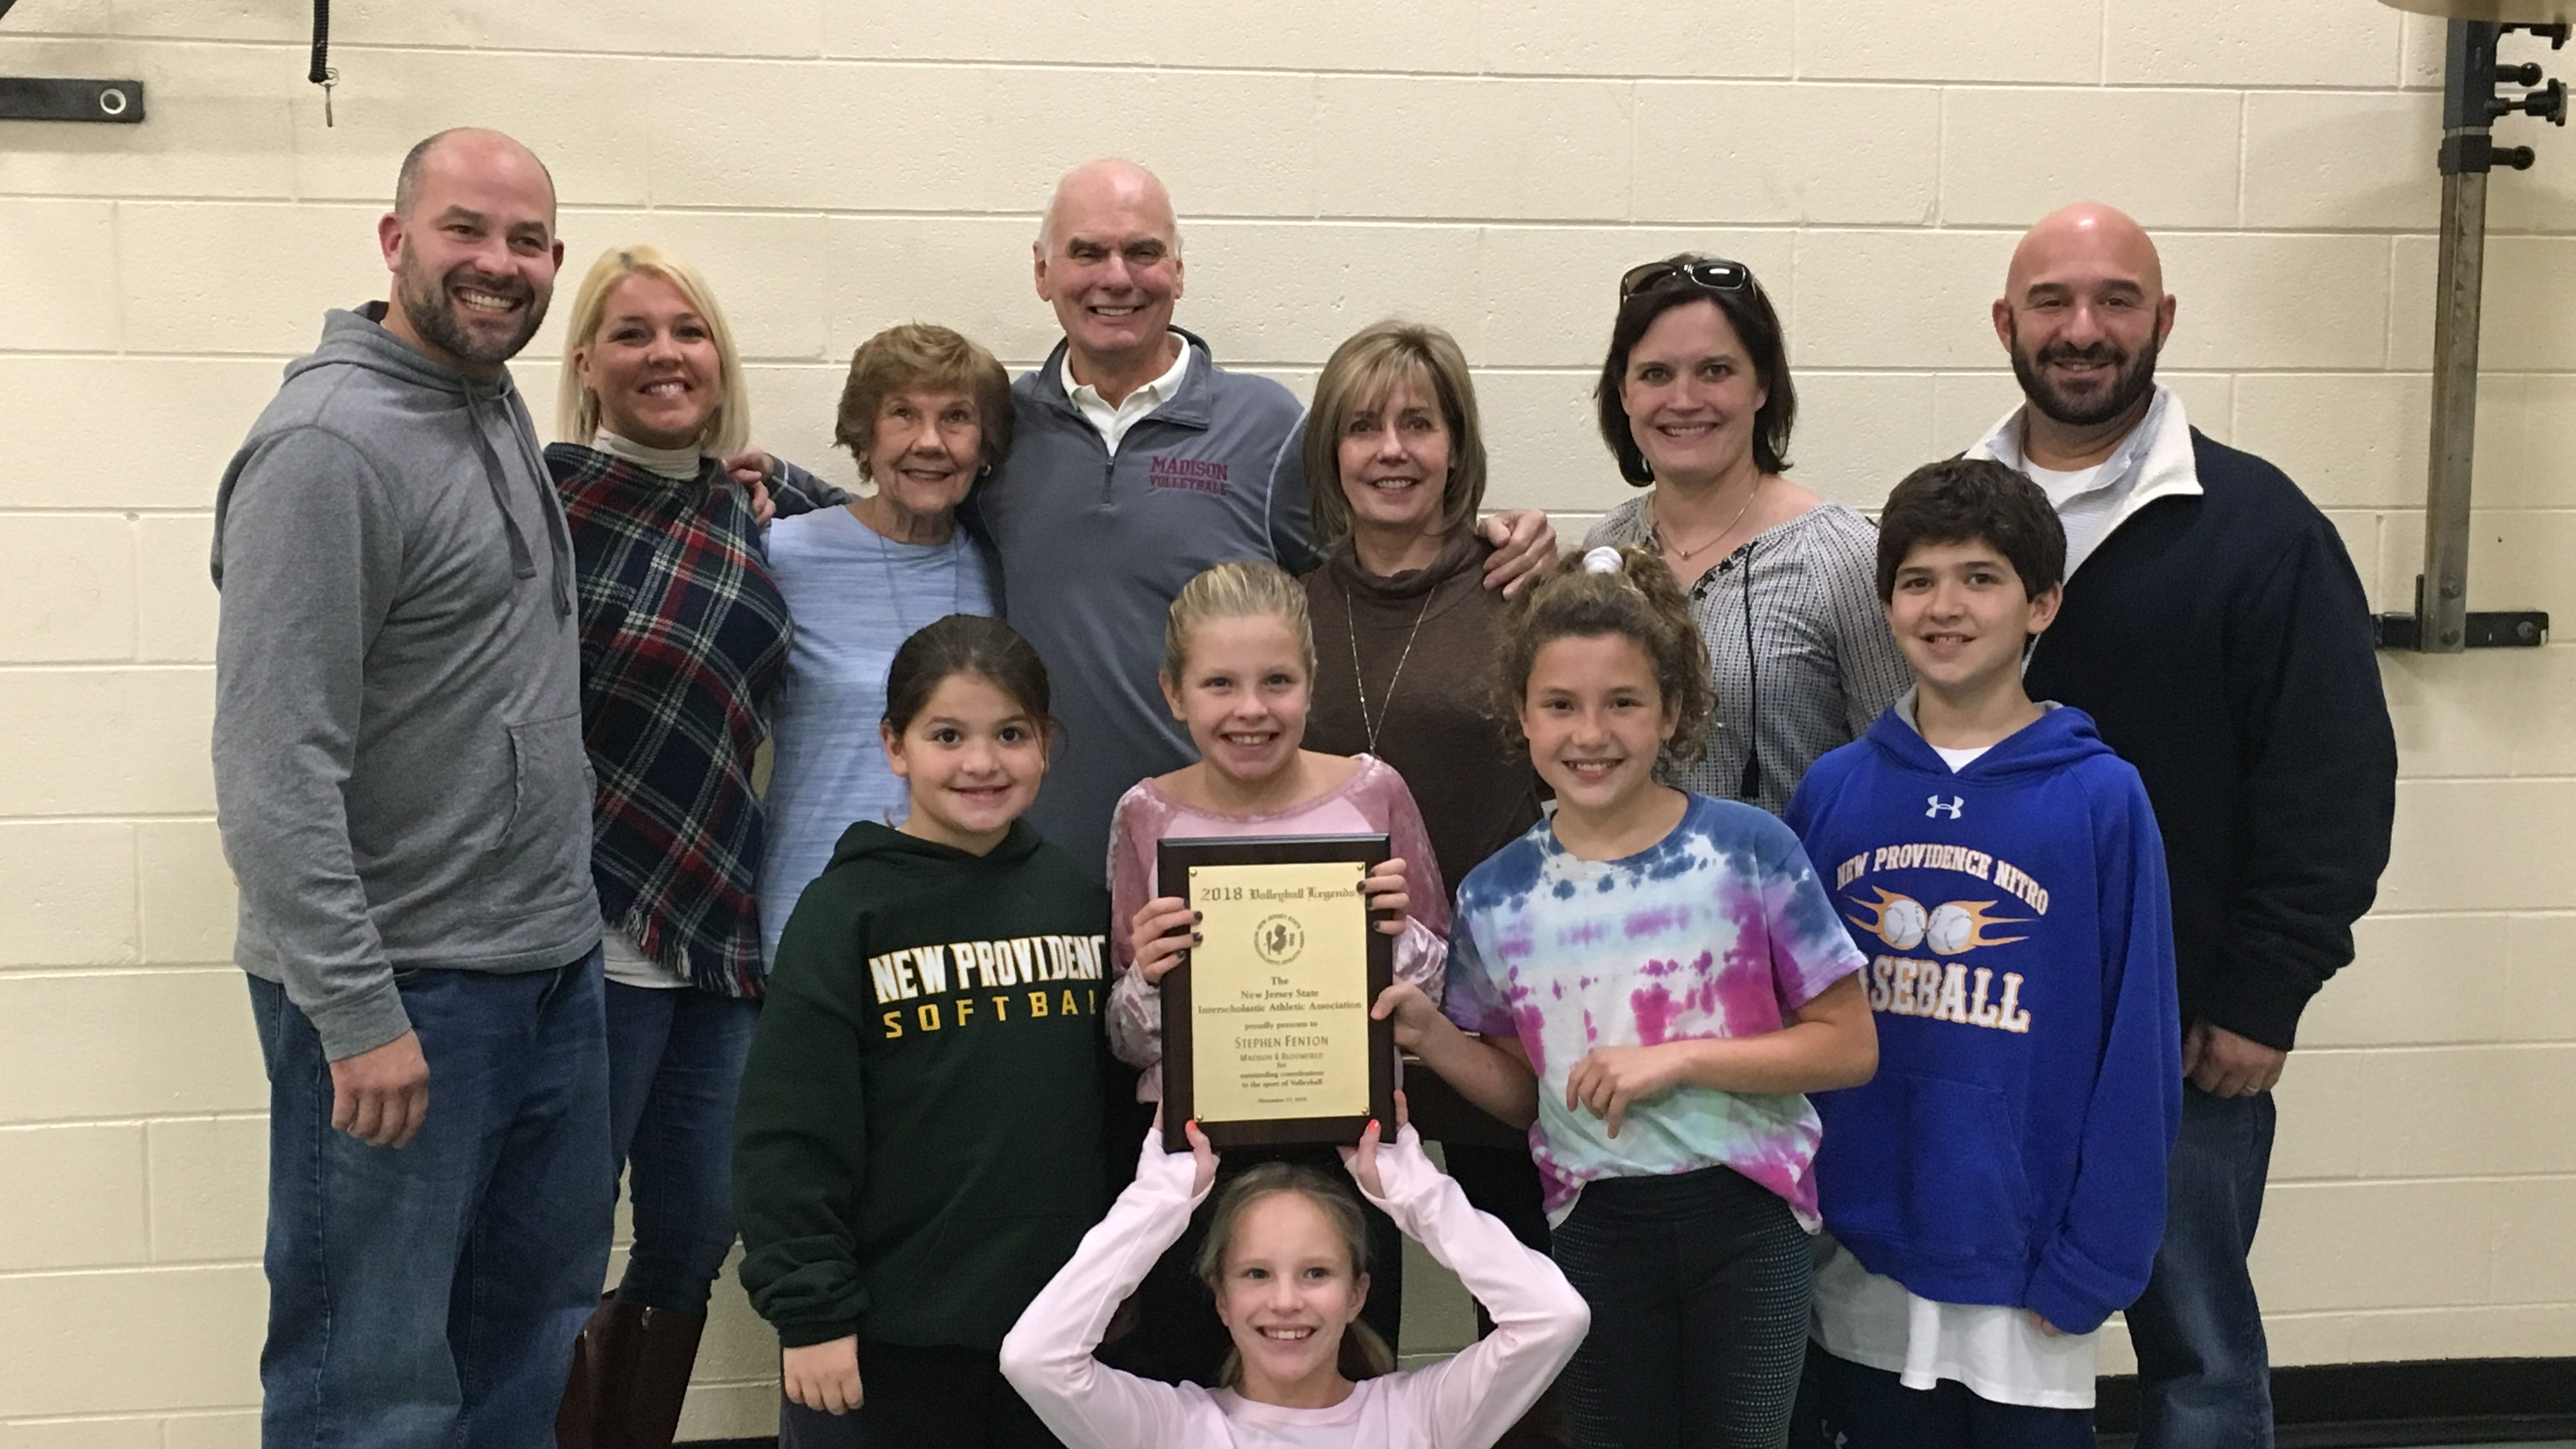 Madison coach Stephen Fenton (center) and new NJSIAA Volleyball Legend receives congratulations from his mother, Lorraine (left), wife Karen (right), children Jennifer Kessler and Stephen Fenton Jr., and their spouses and children.